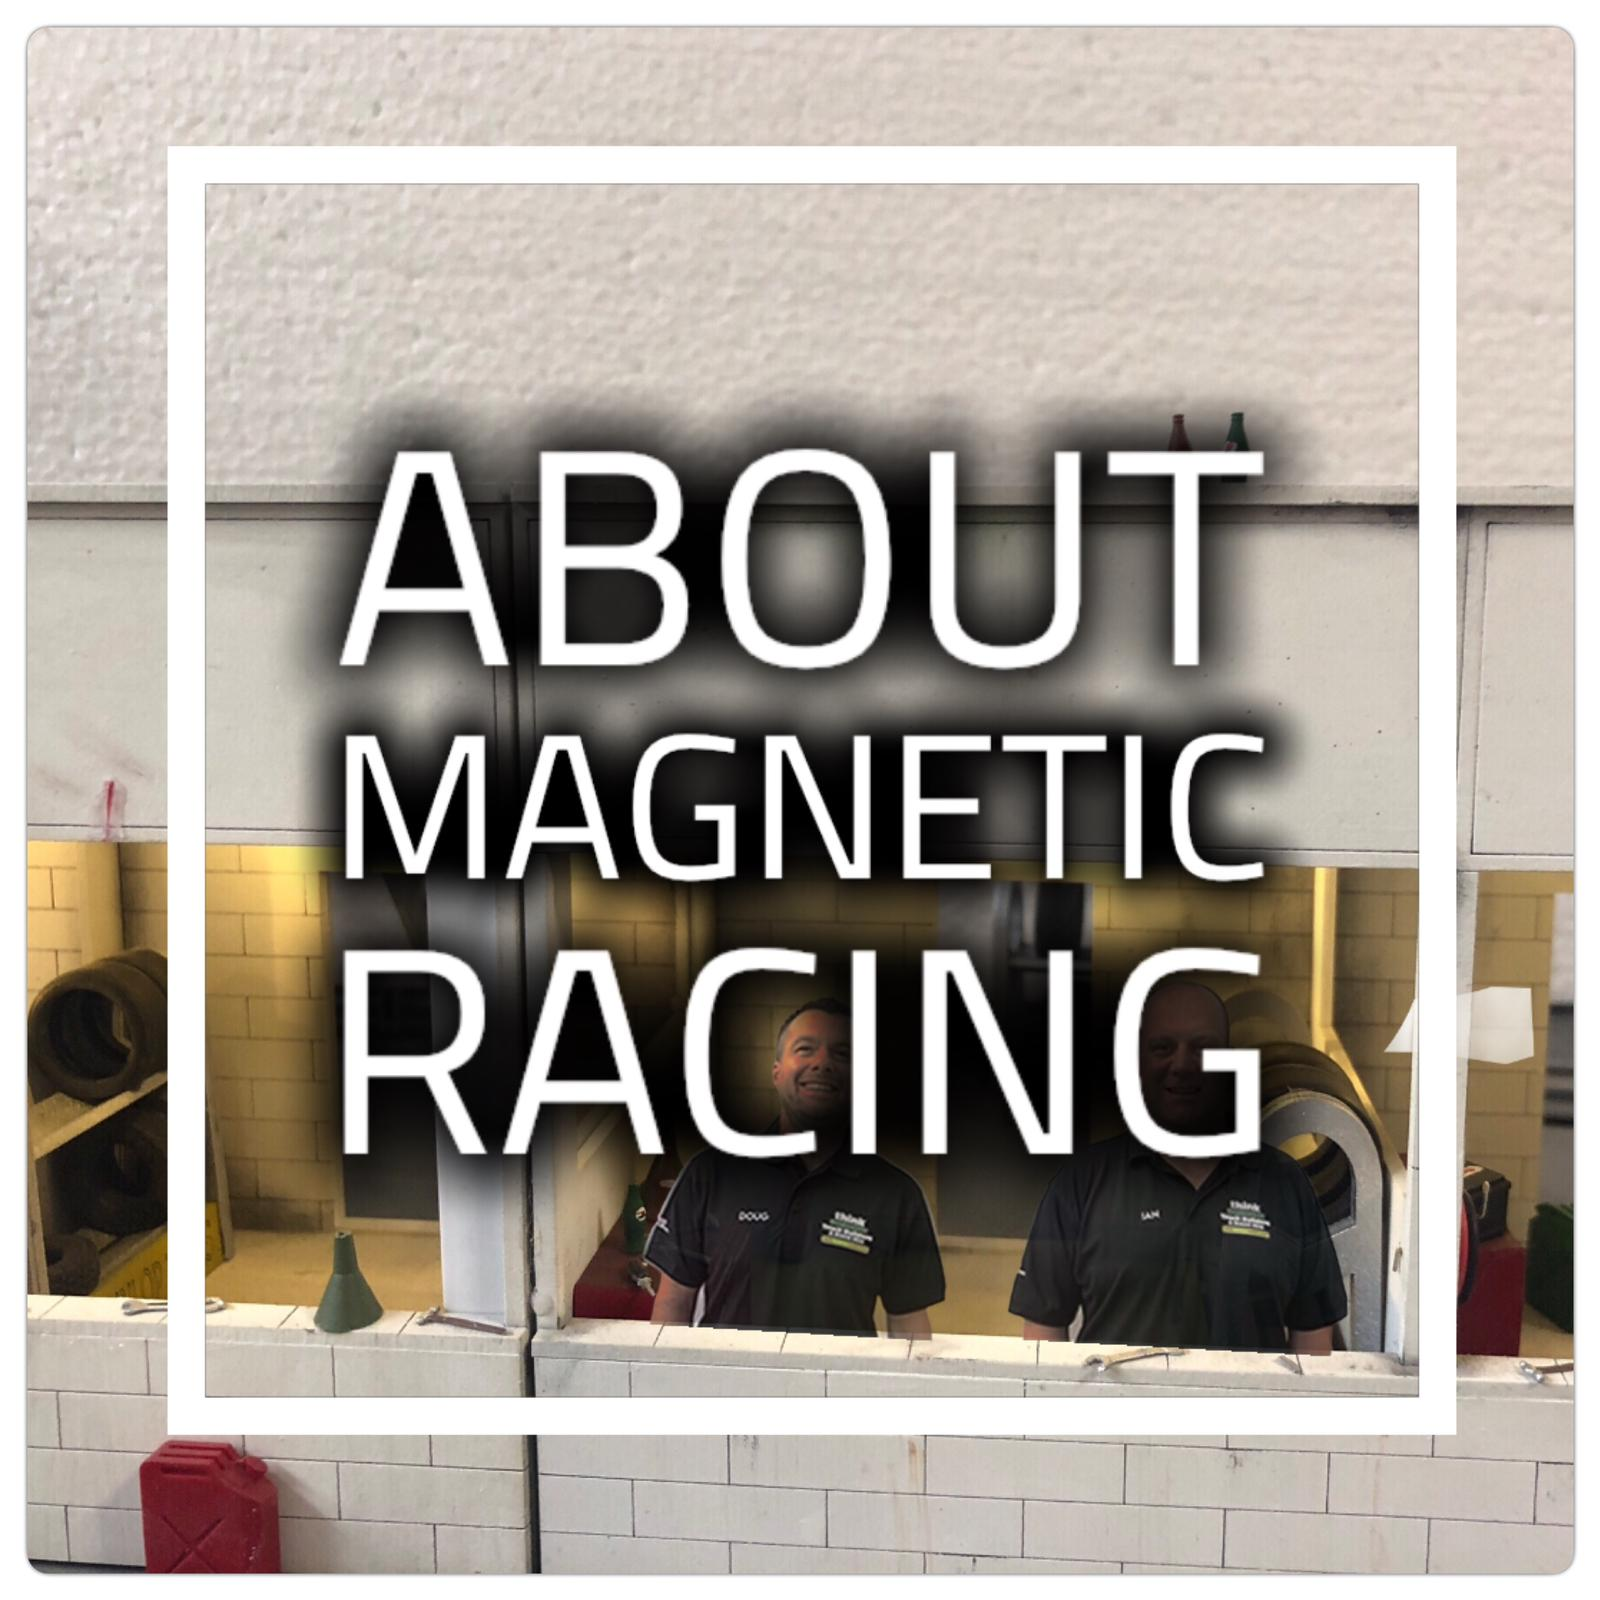 About Magnetic Racing